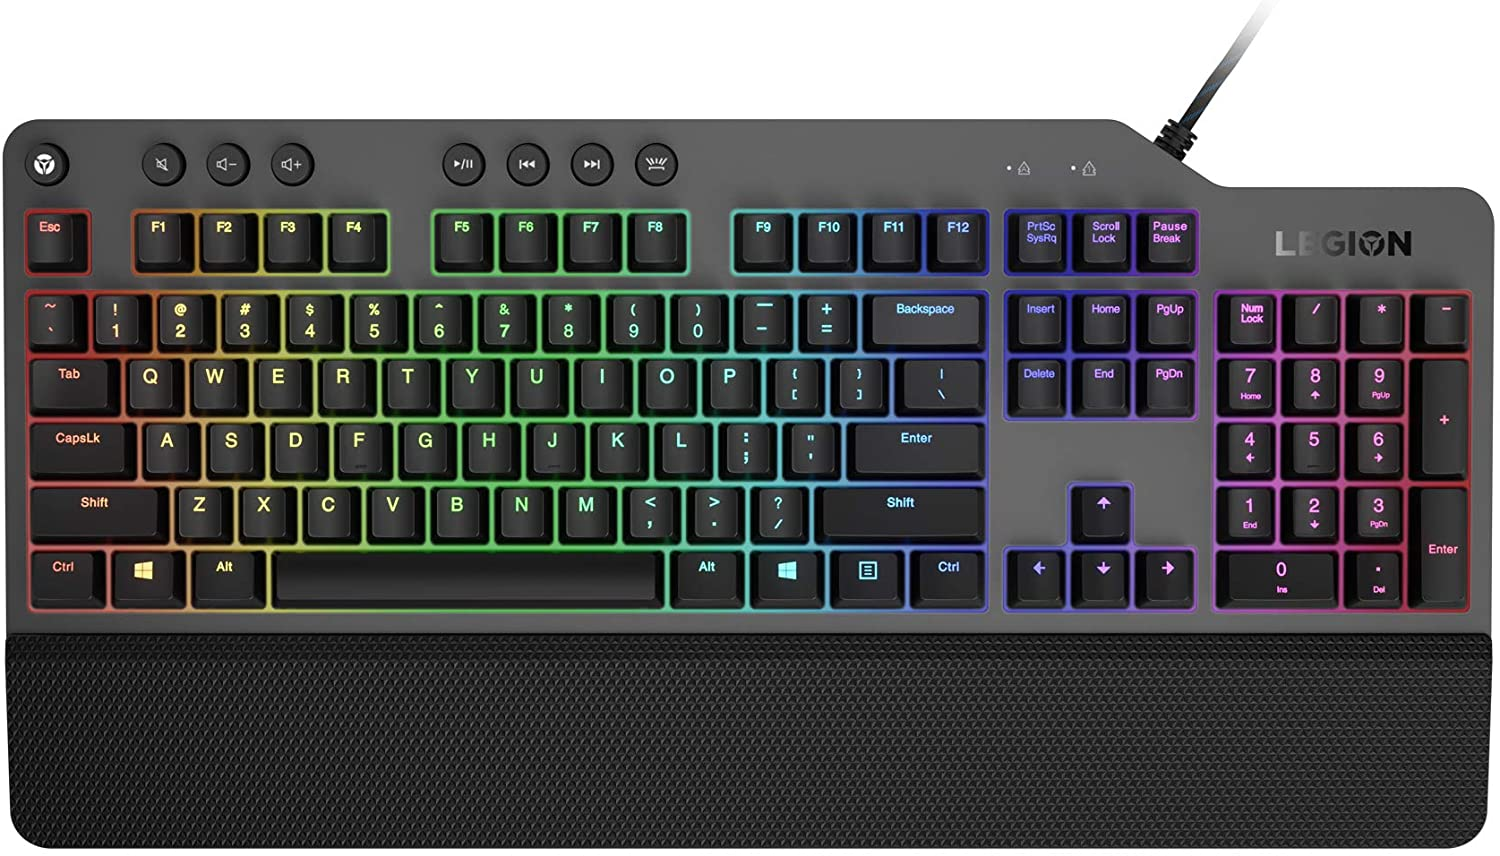 Lenovo GY40T26478 Legion K500 RGB Mechanical Gaming Keyboard, 3 Zone Full-Size Keyboard, 7 User Programmable Hot Keys; 16.8 Million Colors, 50 Million-Click Red Mechanical Keys, Detachable Palm Rest